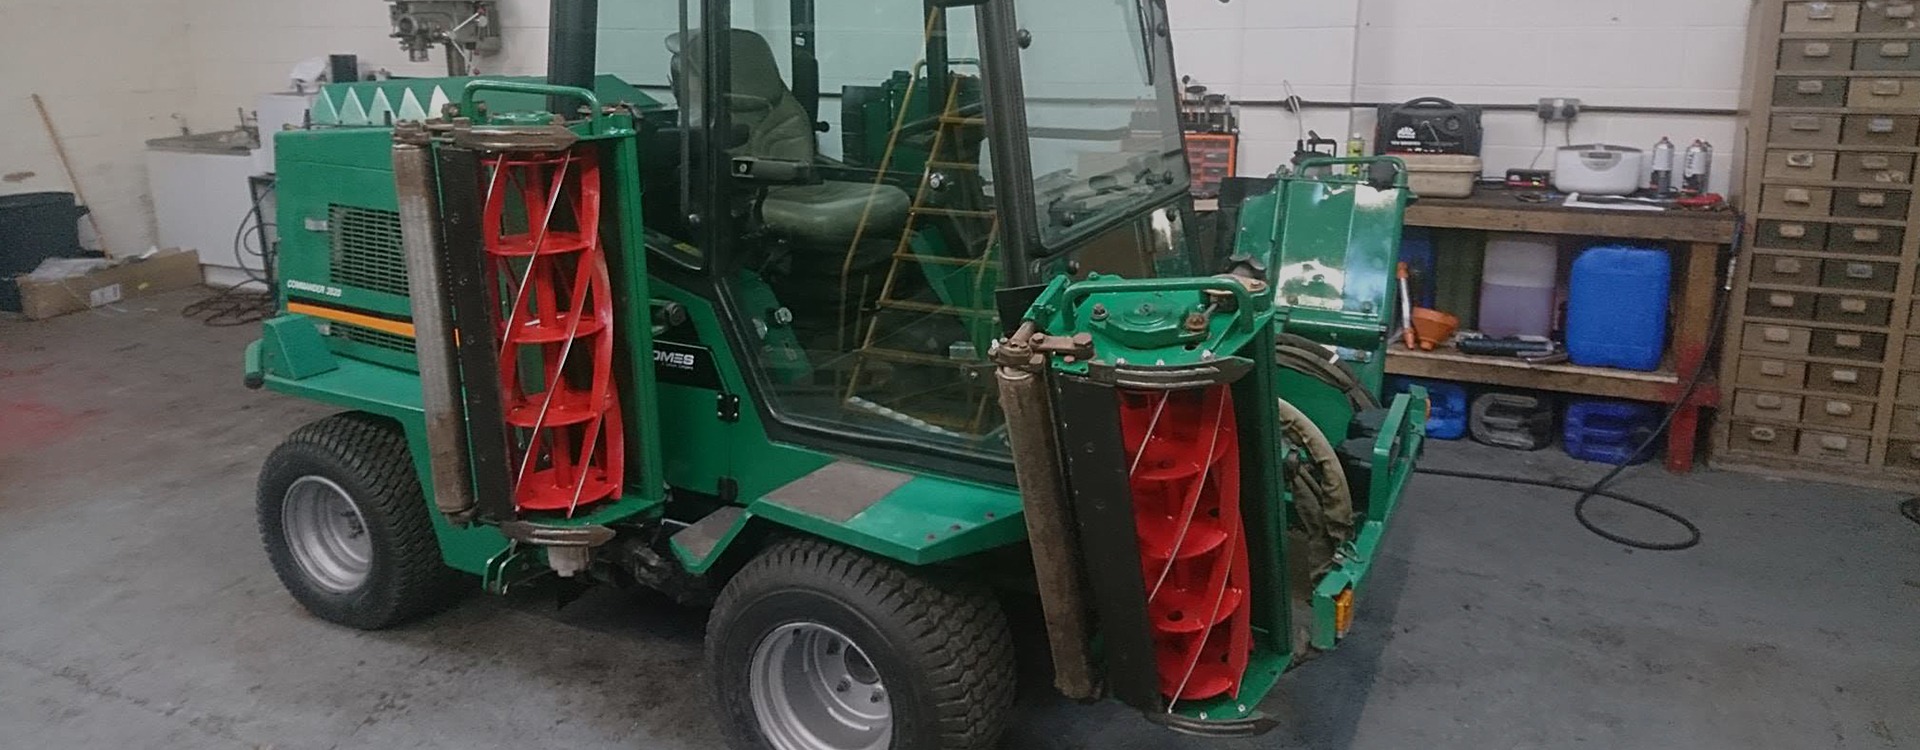 Hortus Servicing - Tractor - we keep your machinery working